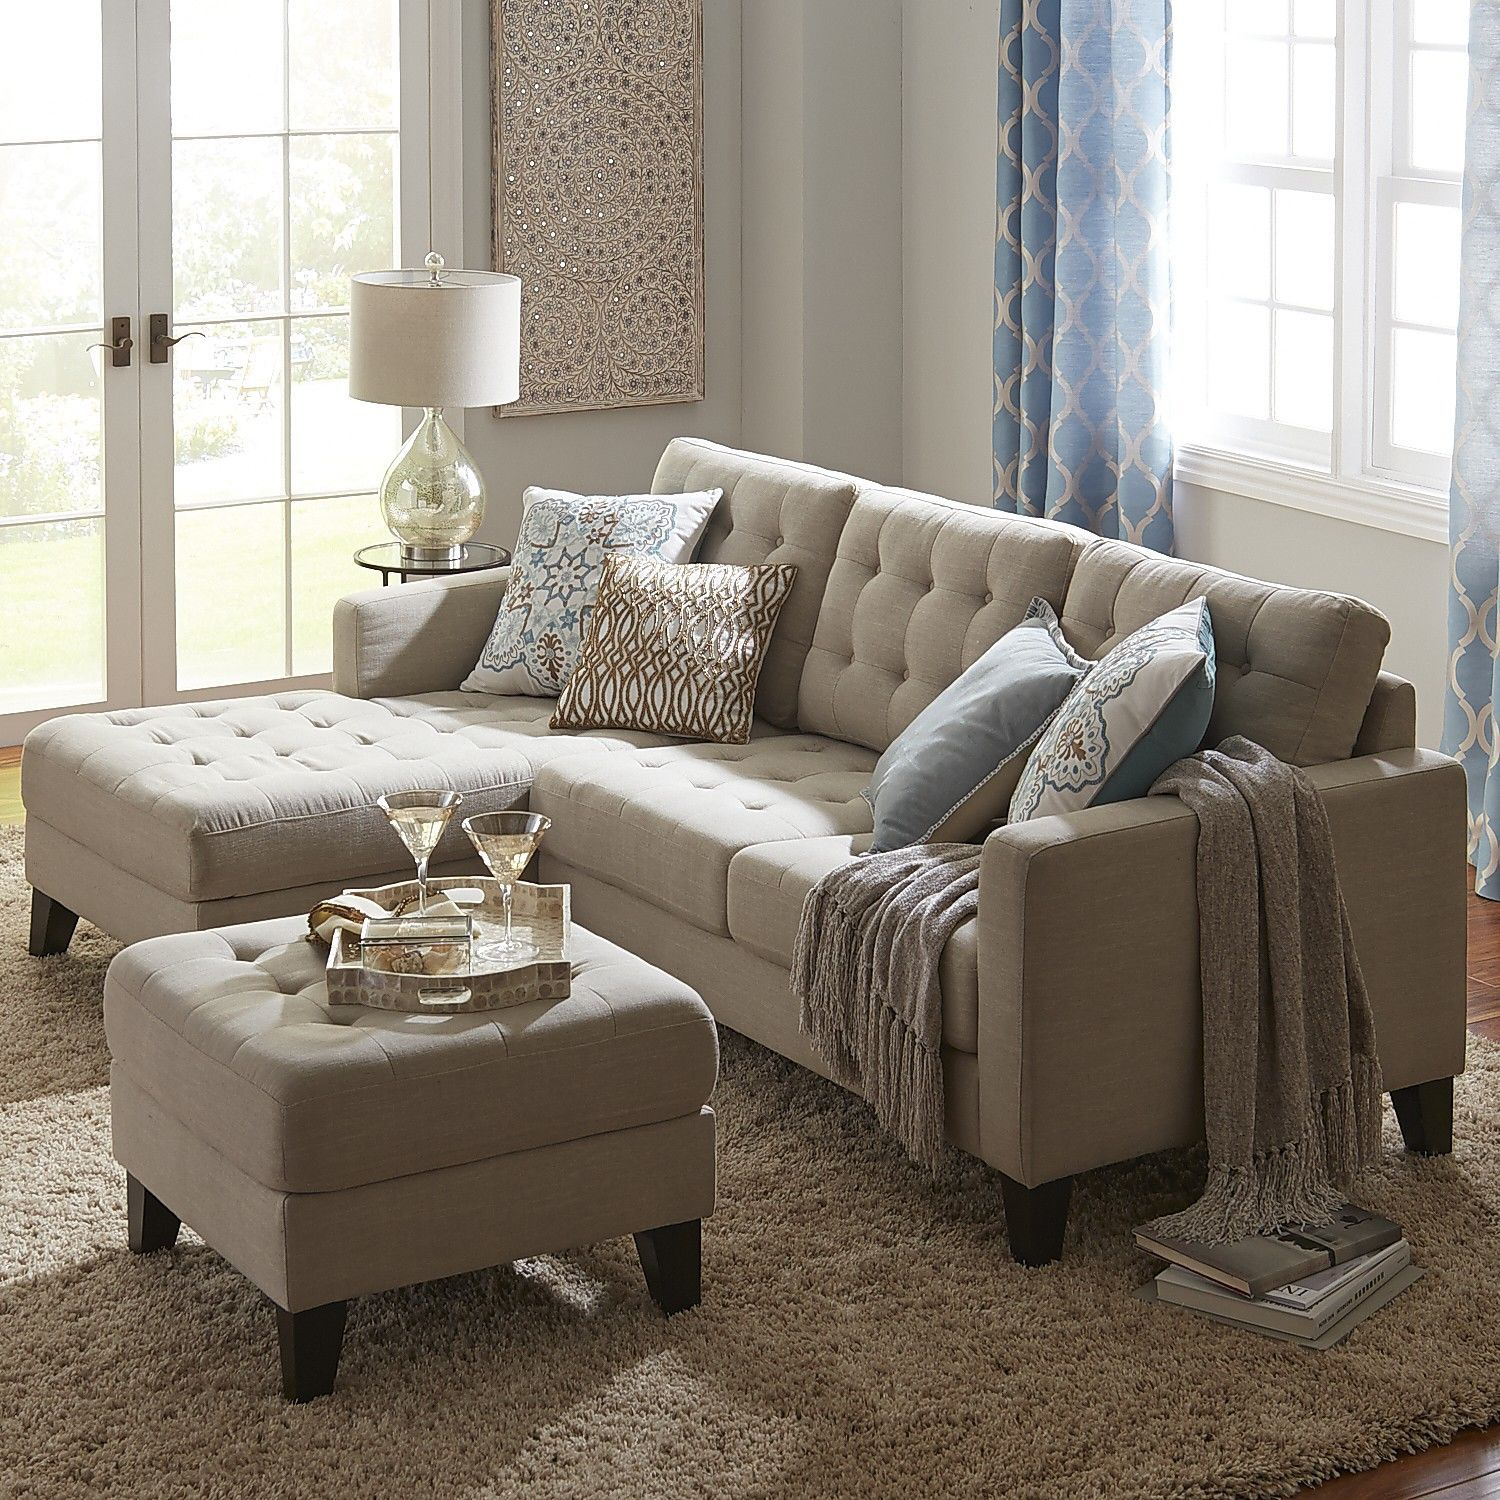 Pier One Living Room Ideas: Build Your Own Nyle Stone Gray Sectional Collection